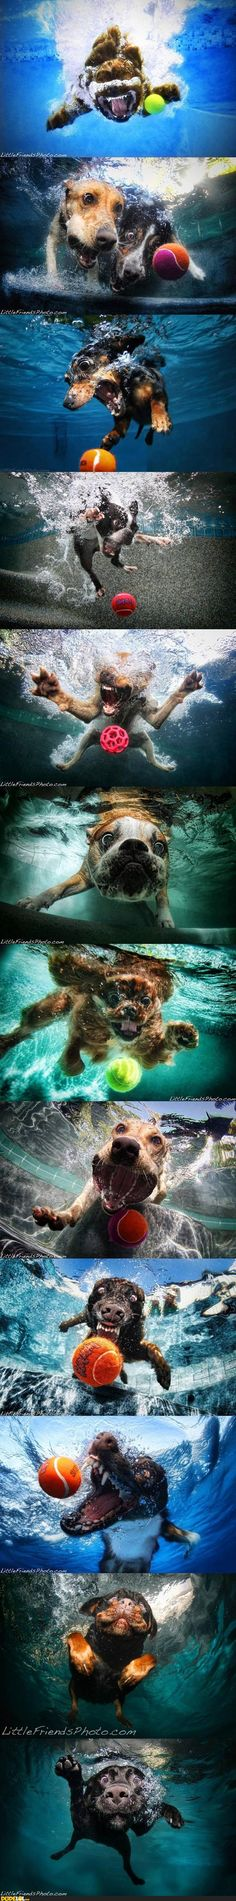 Dogs Diving Underwater, LOLOLOLOLOL!!!!!!!!!!!!!!!!!!!!!!!!!!!